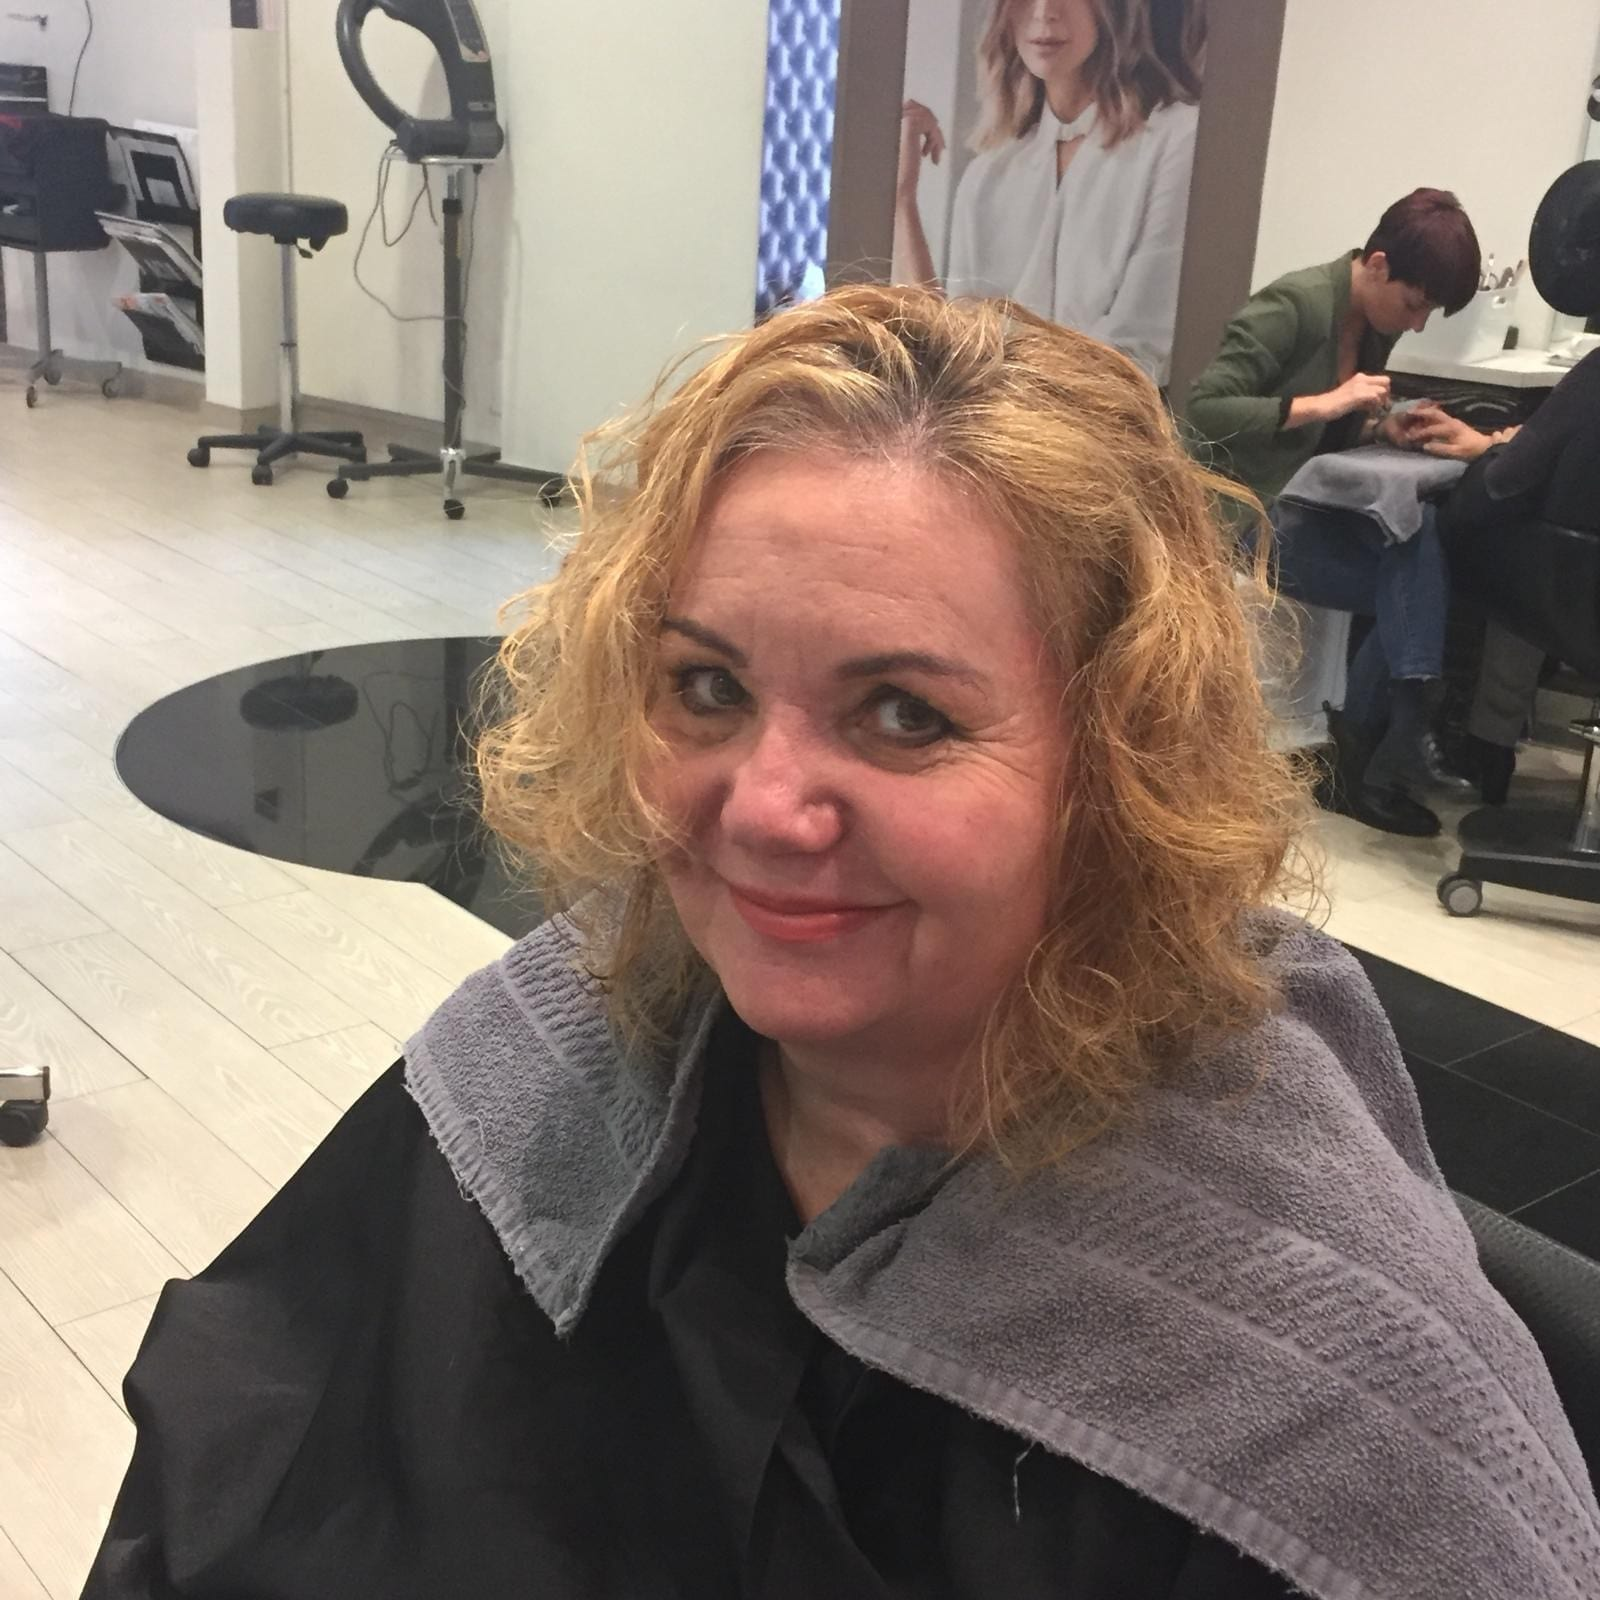 Coiffure avant Christine 1 by Mademoiselle M